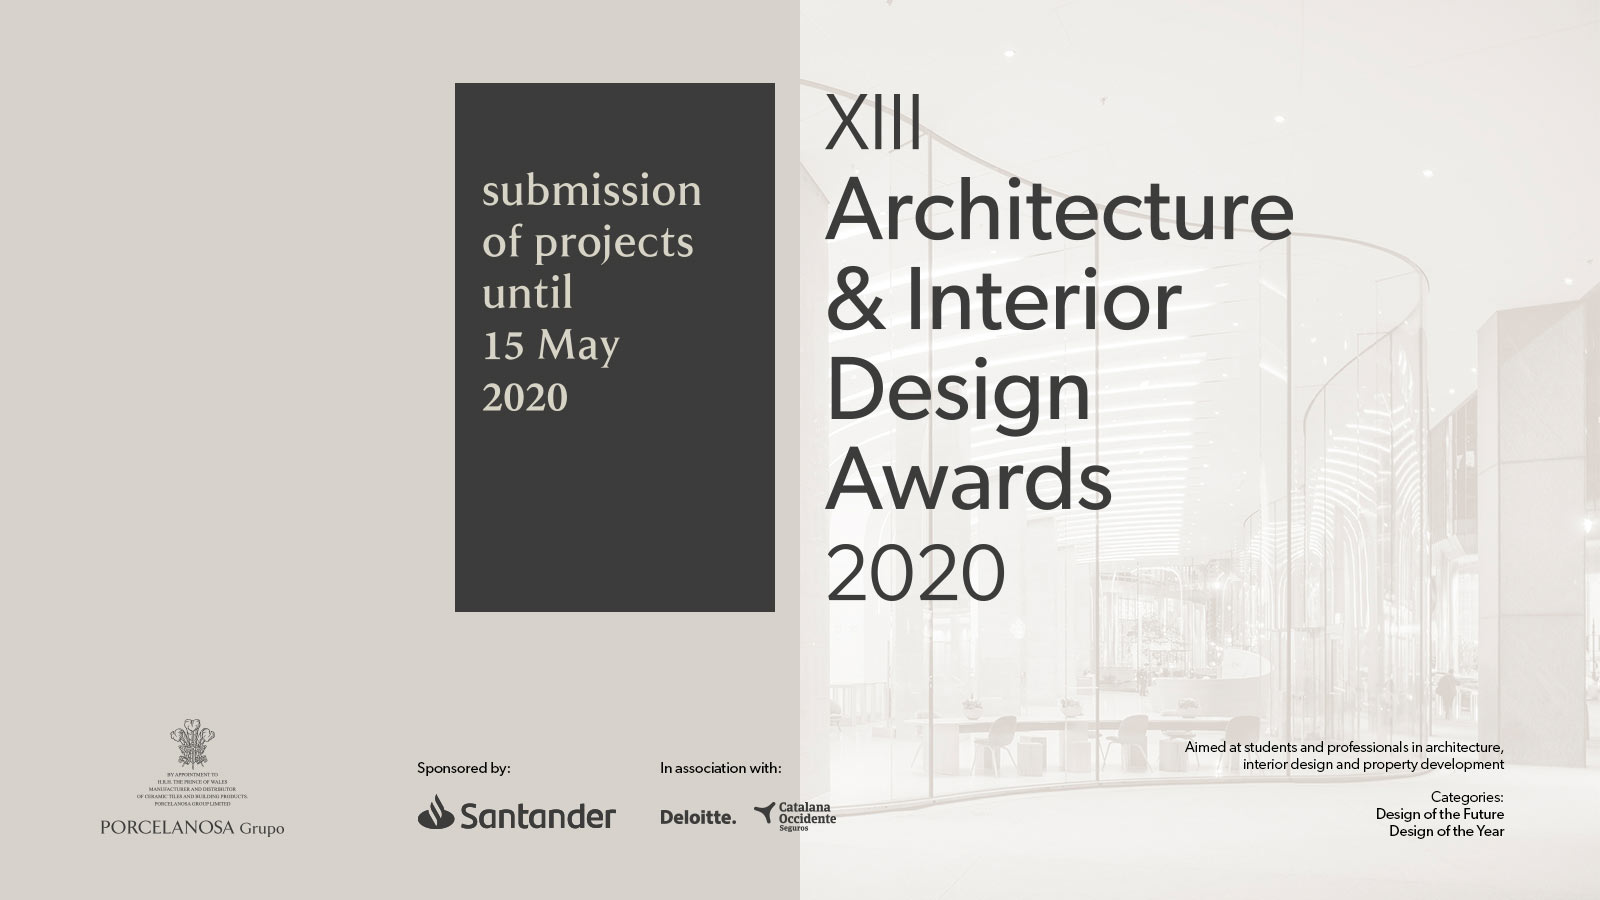 The deadline for submitting projects for the XIII Porcelanosa Awards is extended